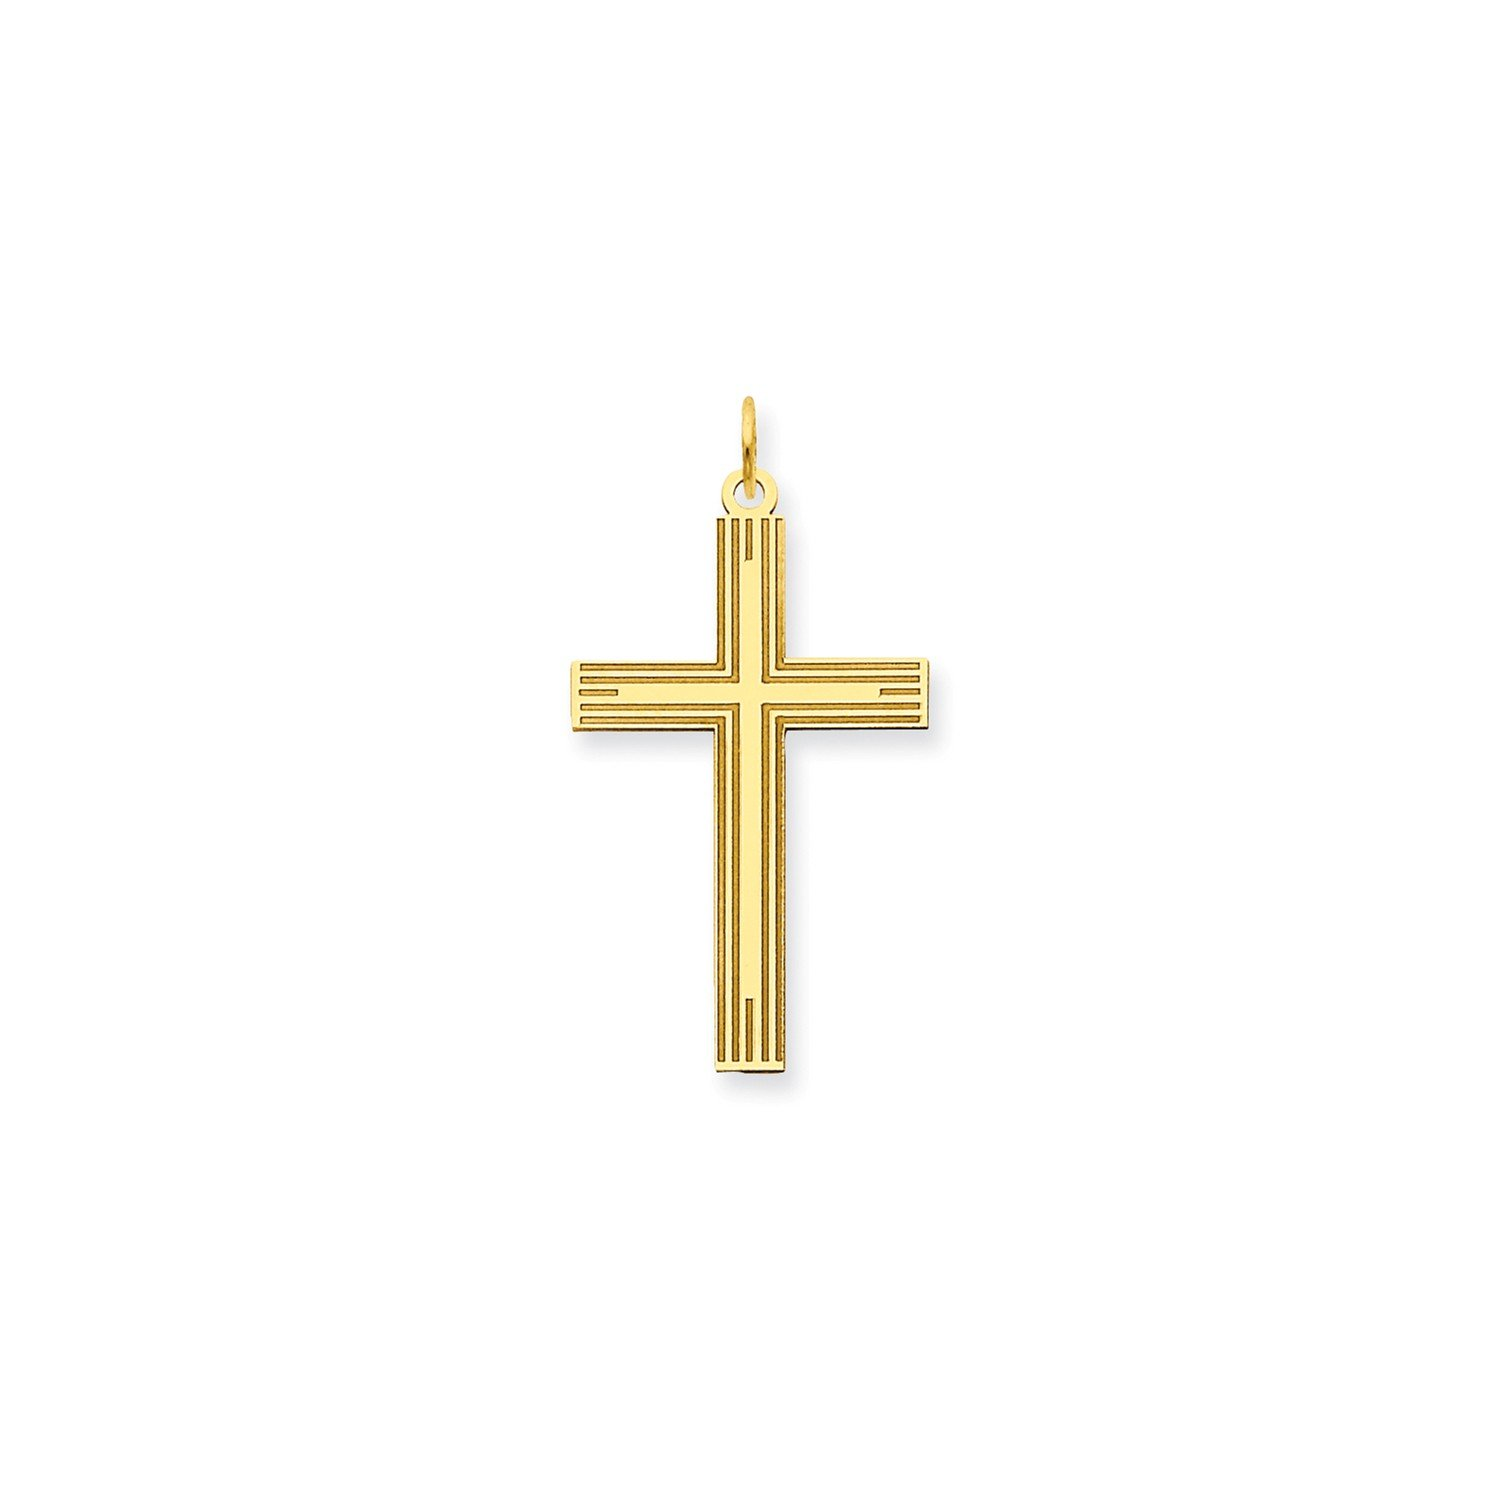 Roy Rose Jewelry 14K Yellow Gold Laser Designed Cross Pendant 32mm length